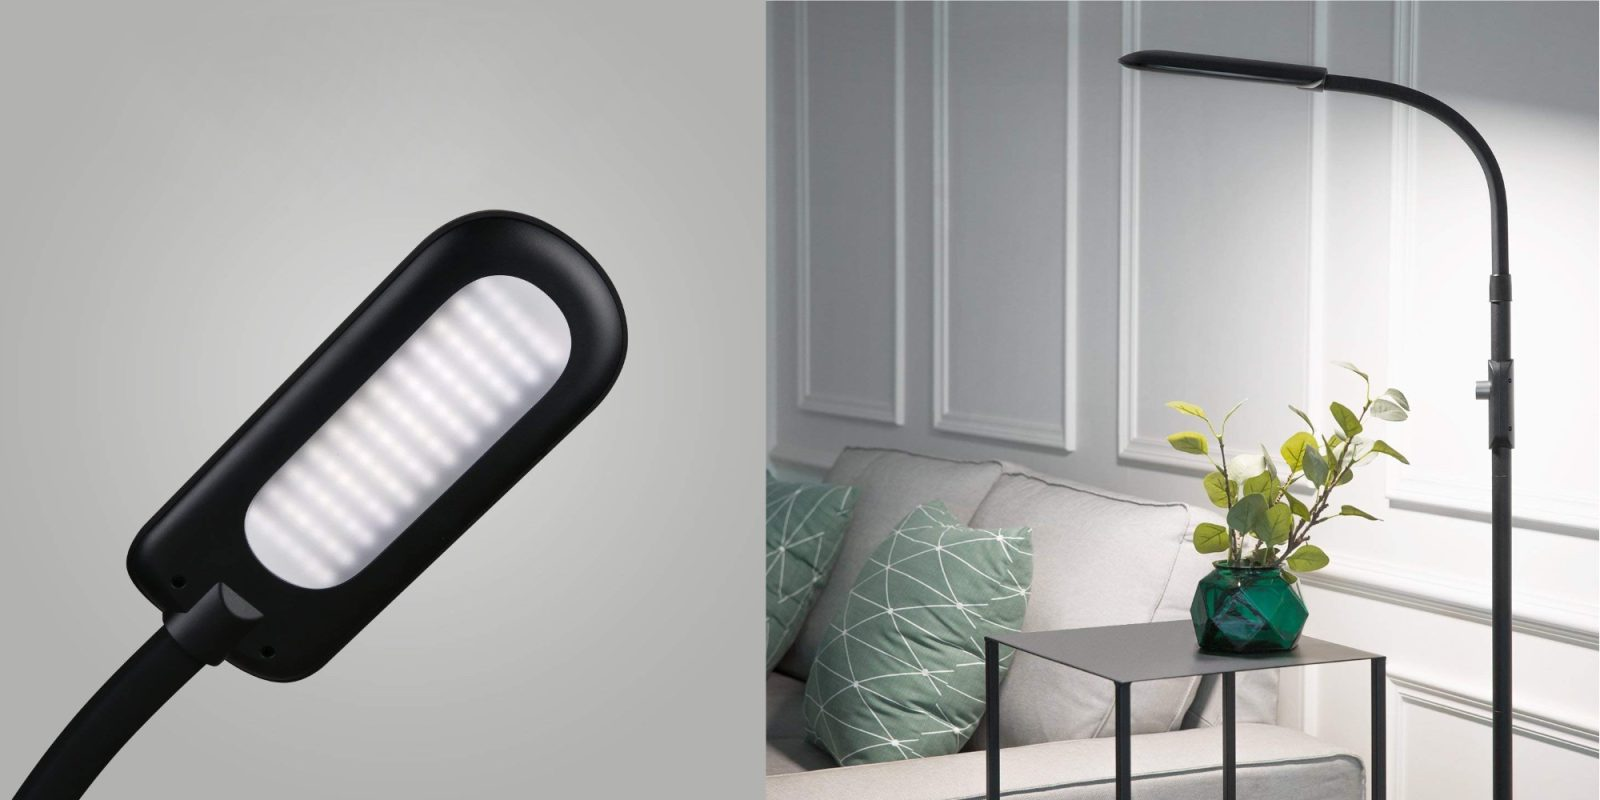 Aukey's 12W Dimmable Gooseneck LED Floor Lamp gets $30 discount down to $40